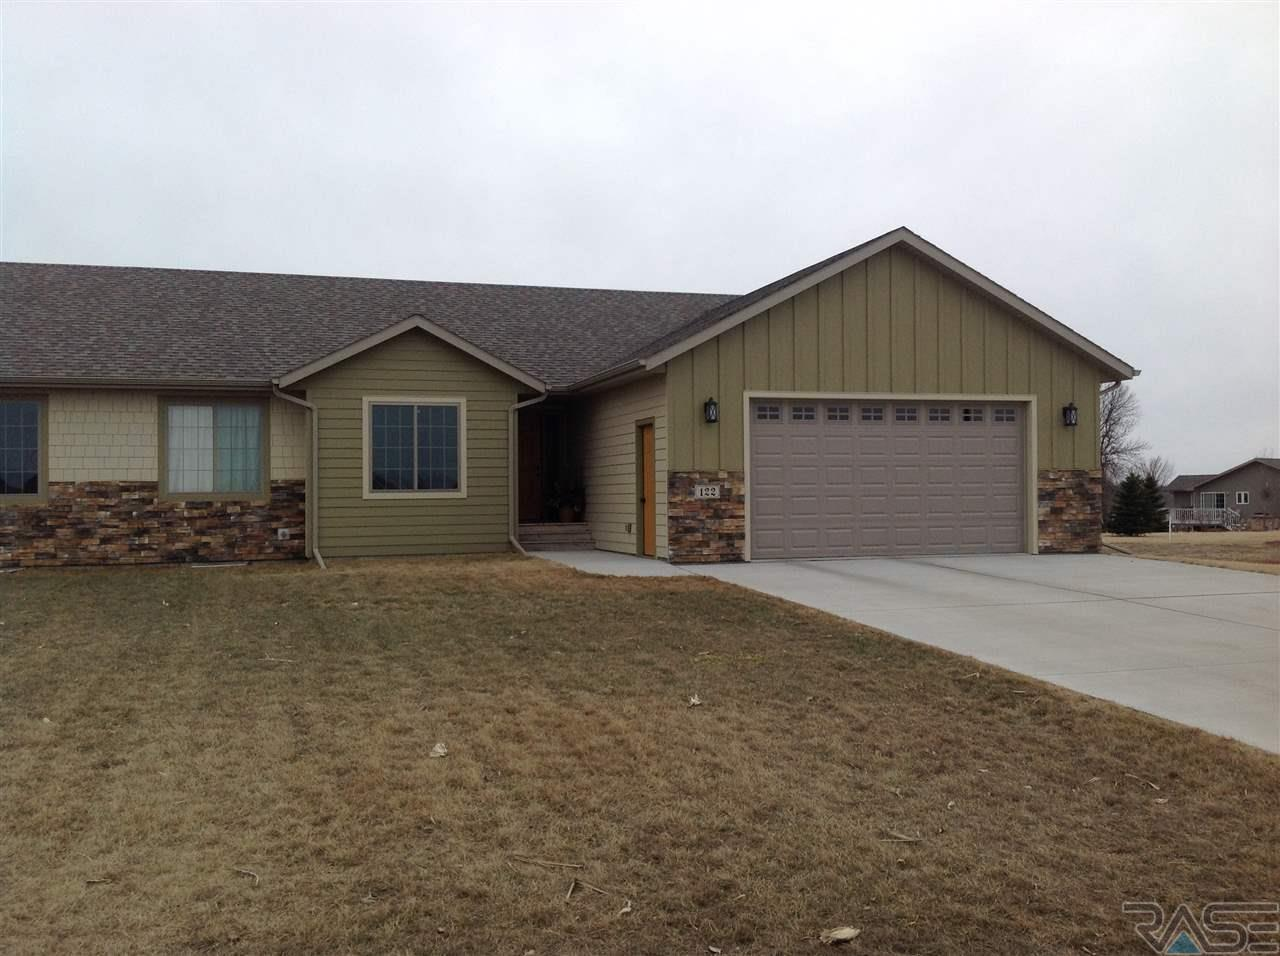 122 Lake Ridge Dr, Wentworth, SD 57075